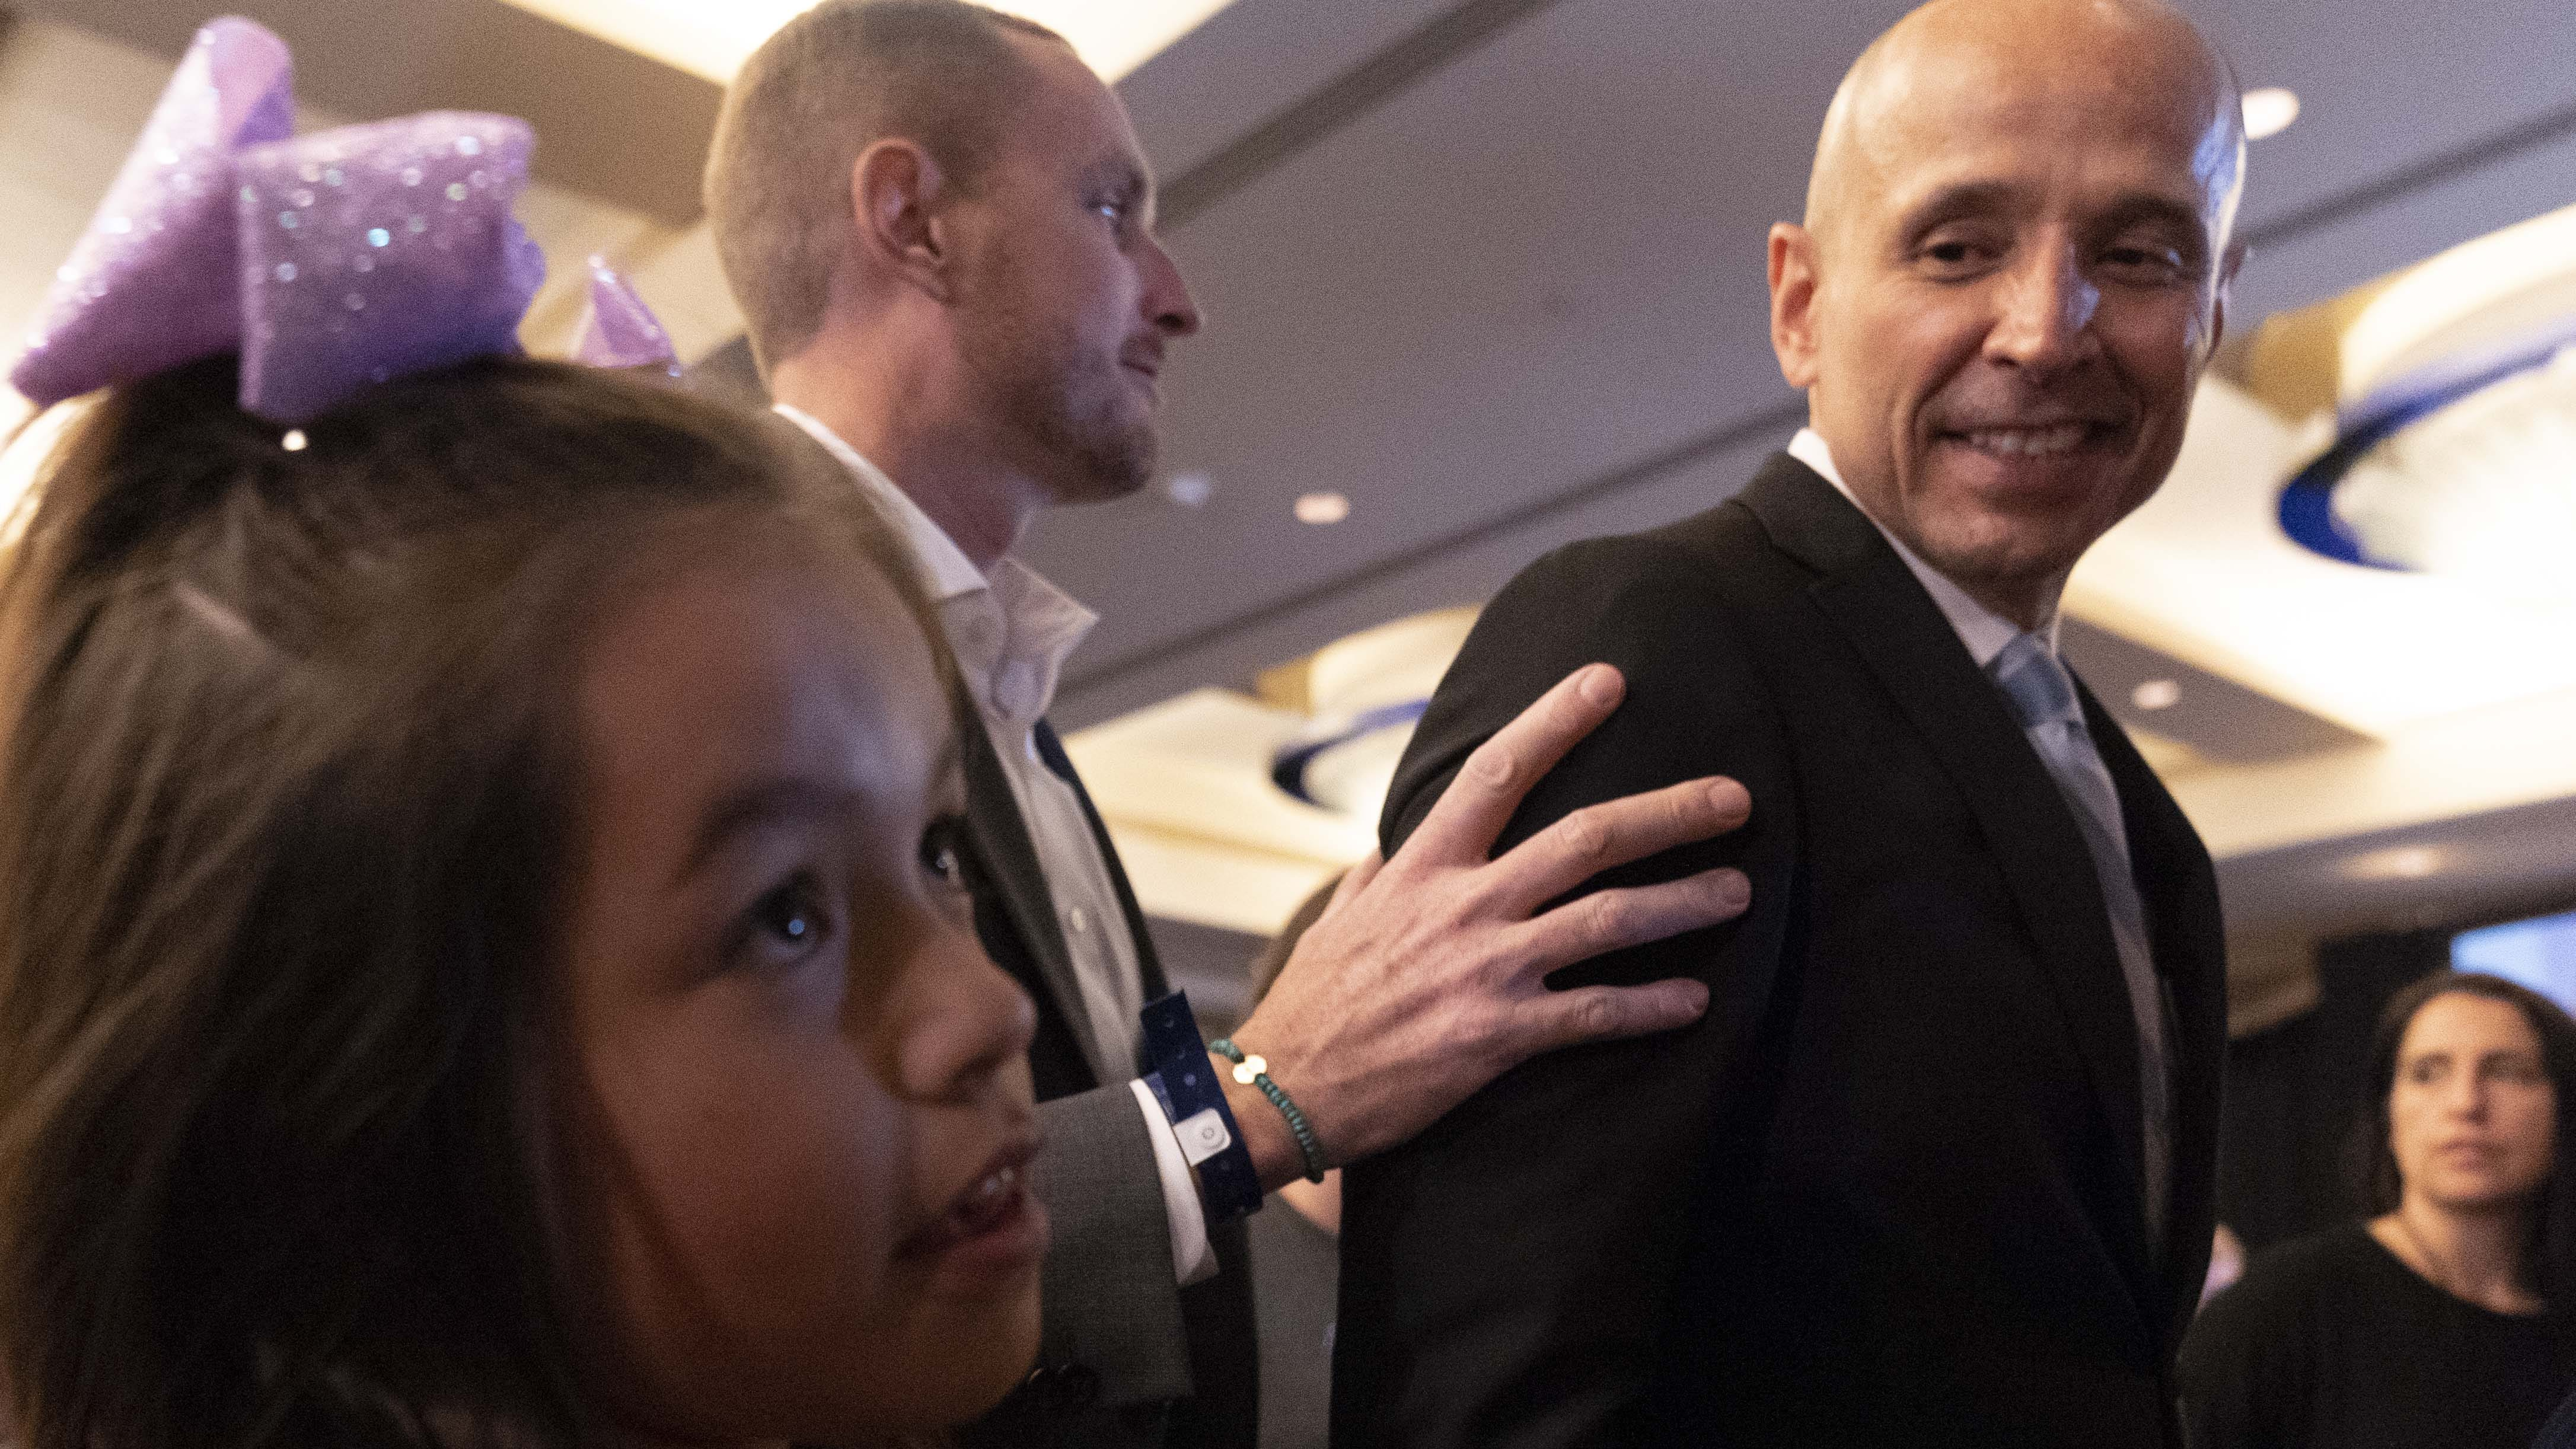 David (Garcia) versus Goliath: Should the governor's race have been tighter?